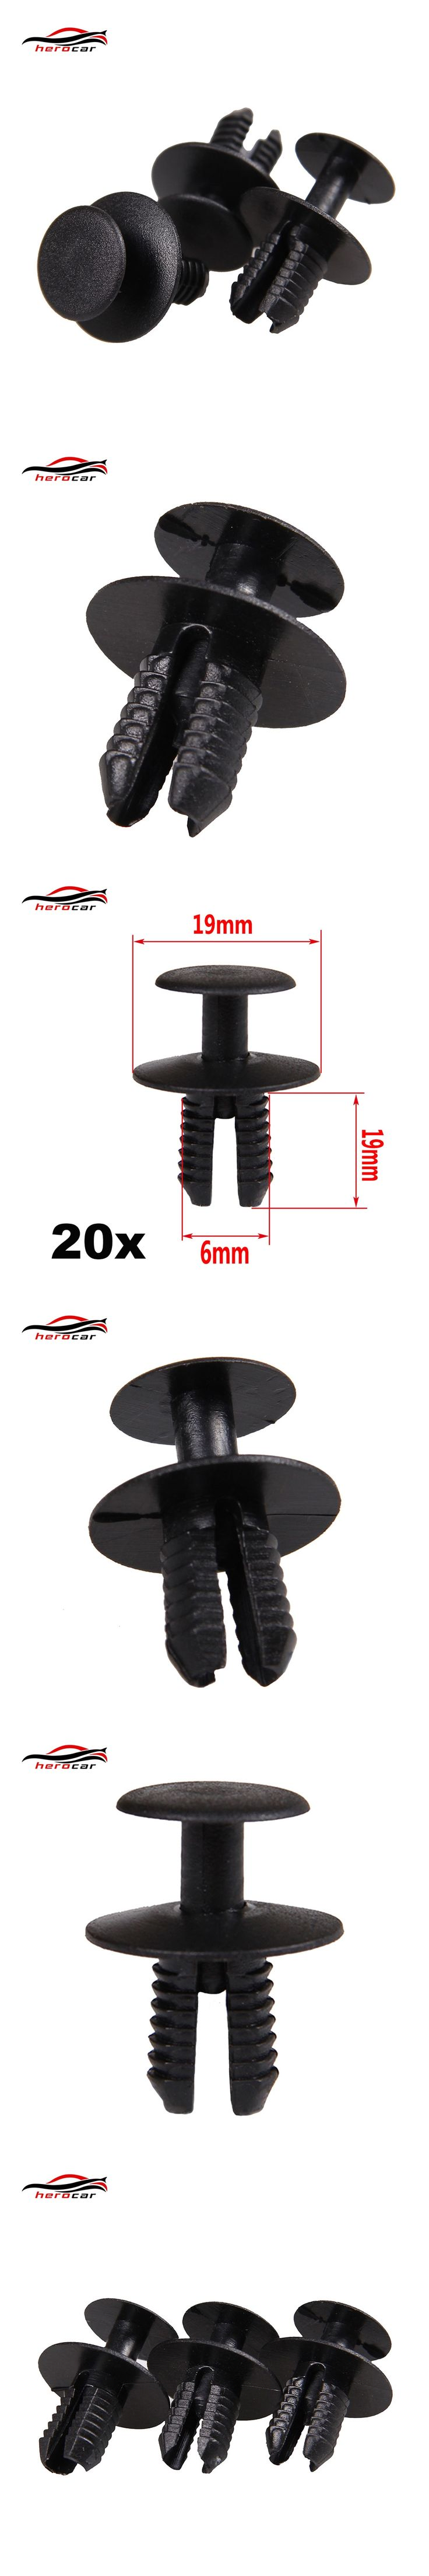 In Stock New 20x For BMW Expanding Rivets- Plastic Trim Clips For bumpers, sills, Skirts & Covers CLIP-02-6MM